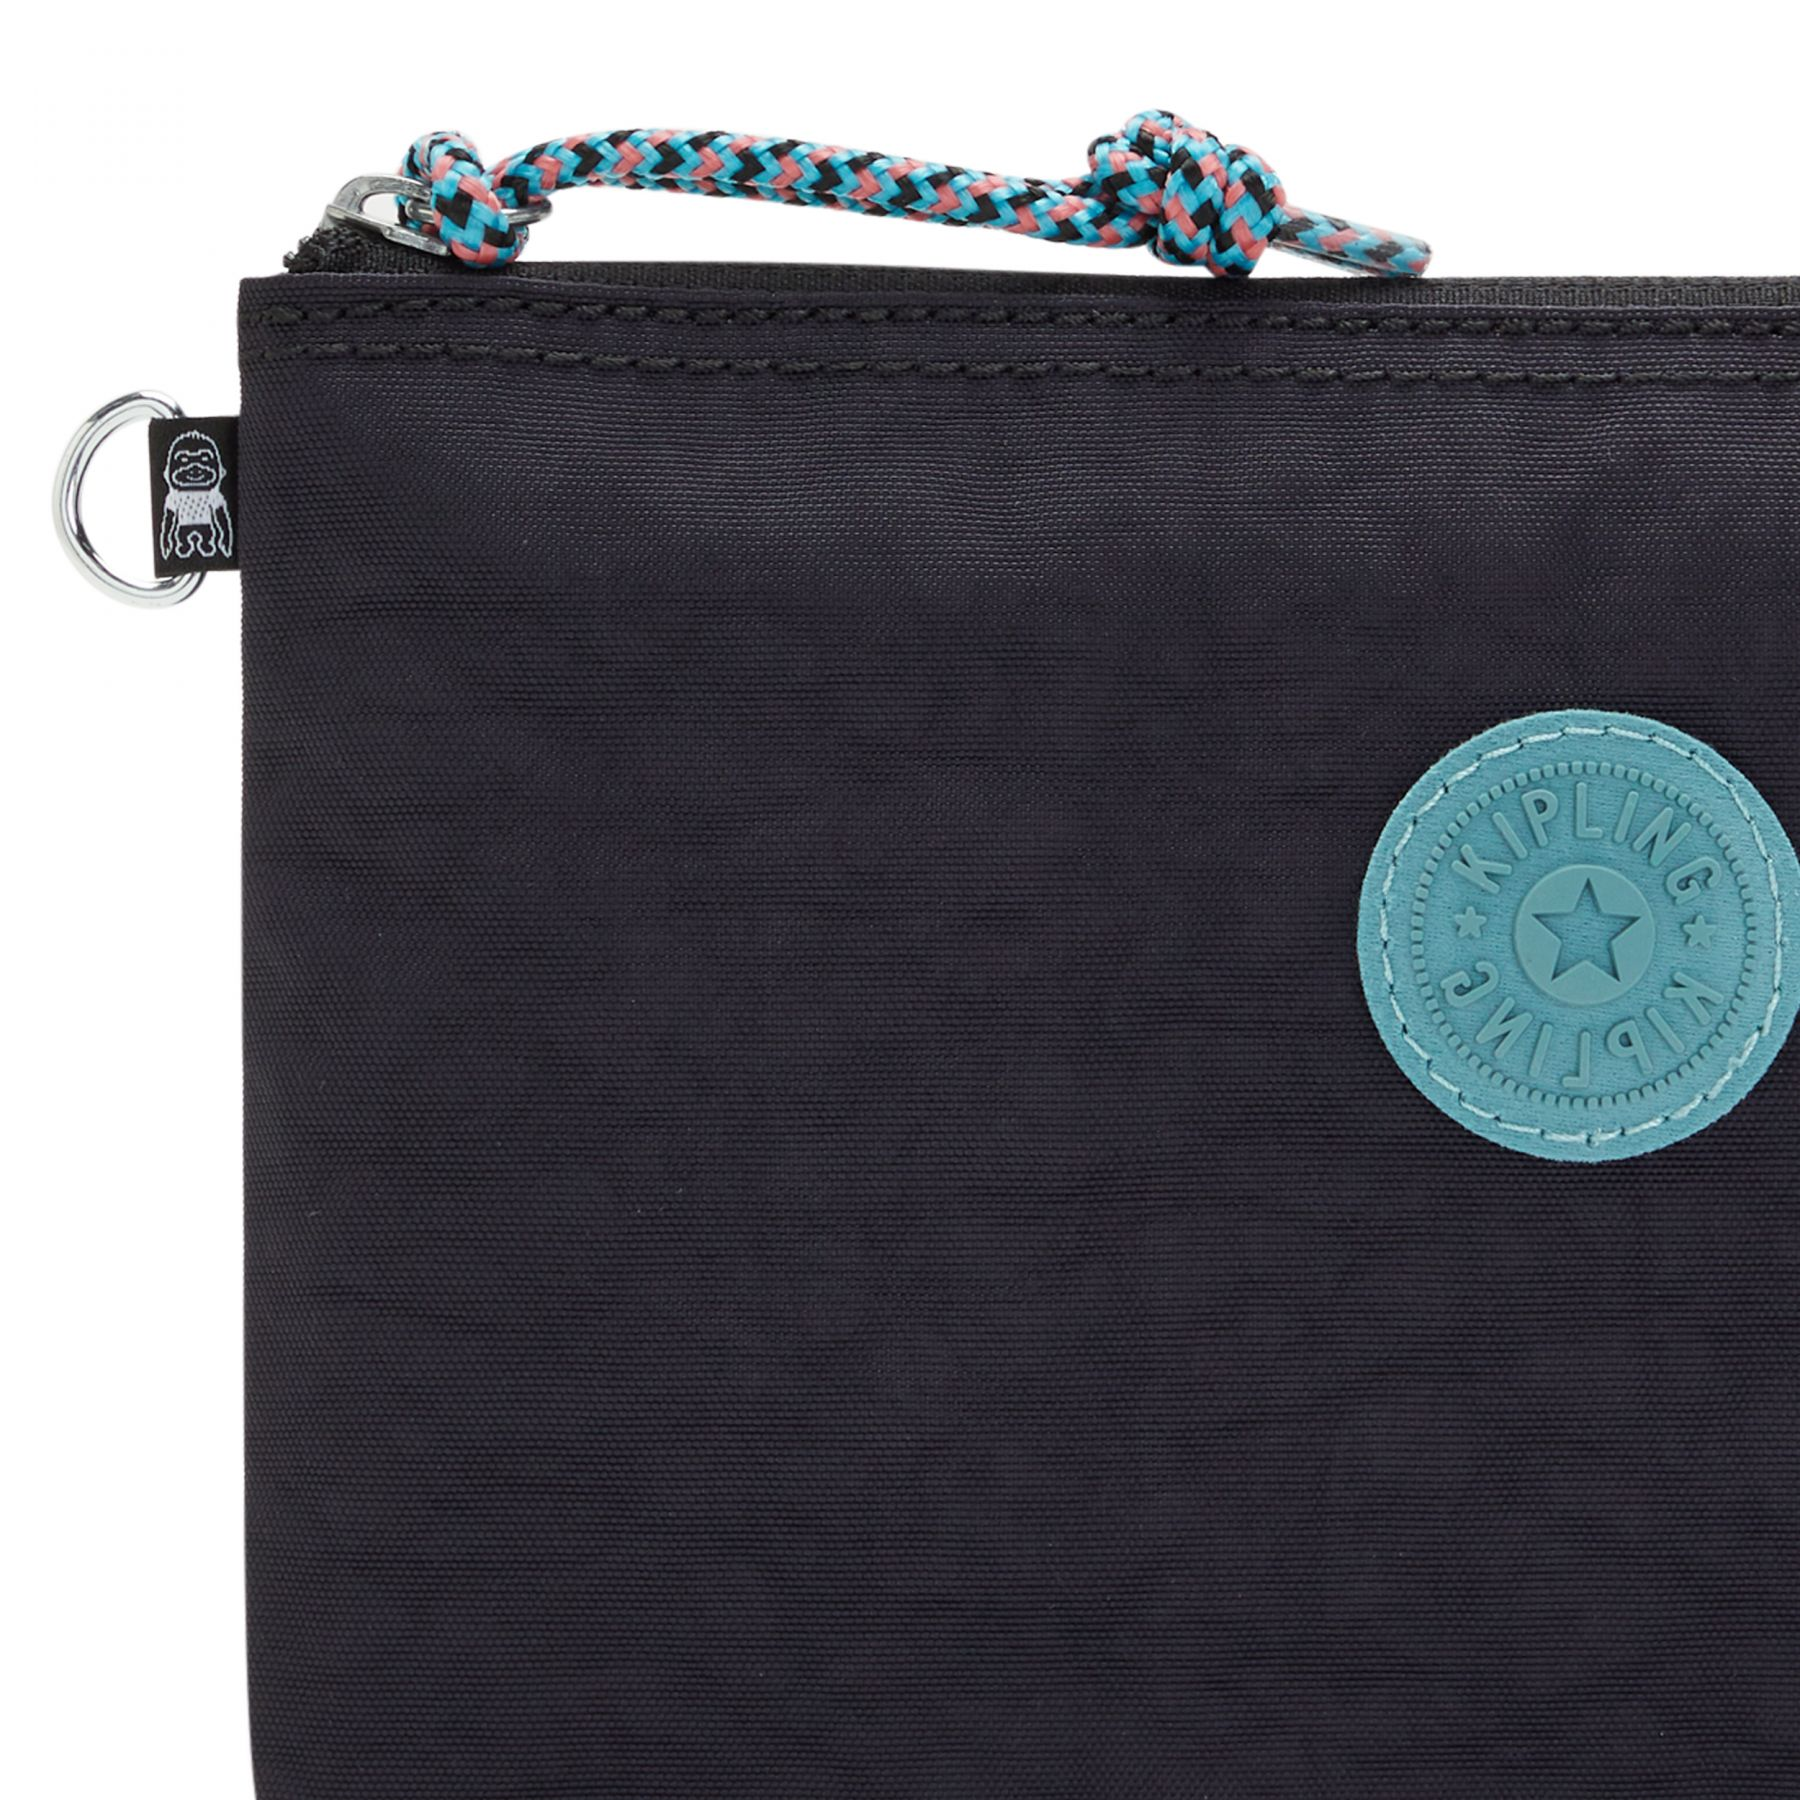 CASUAL POUCH ACCESSORIES by Kipling - view 5